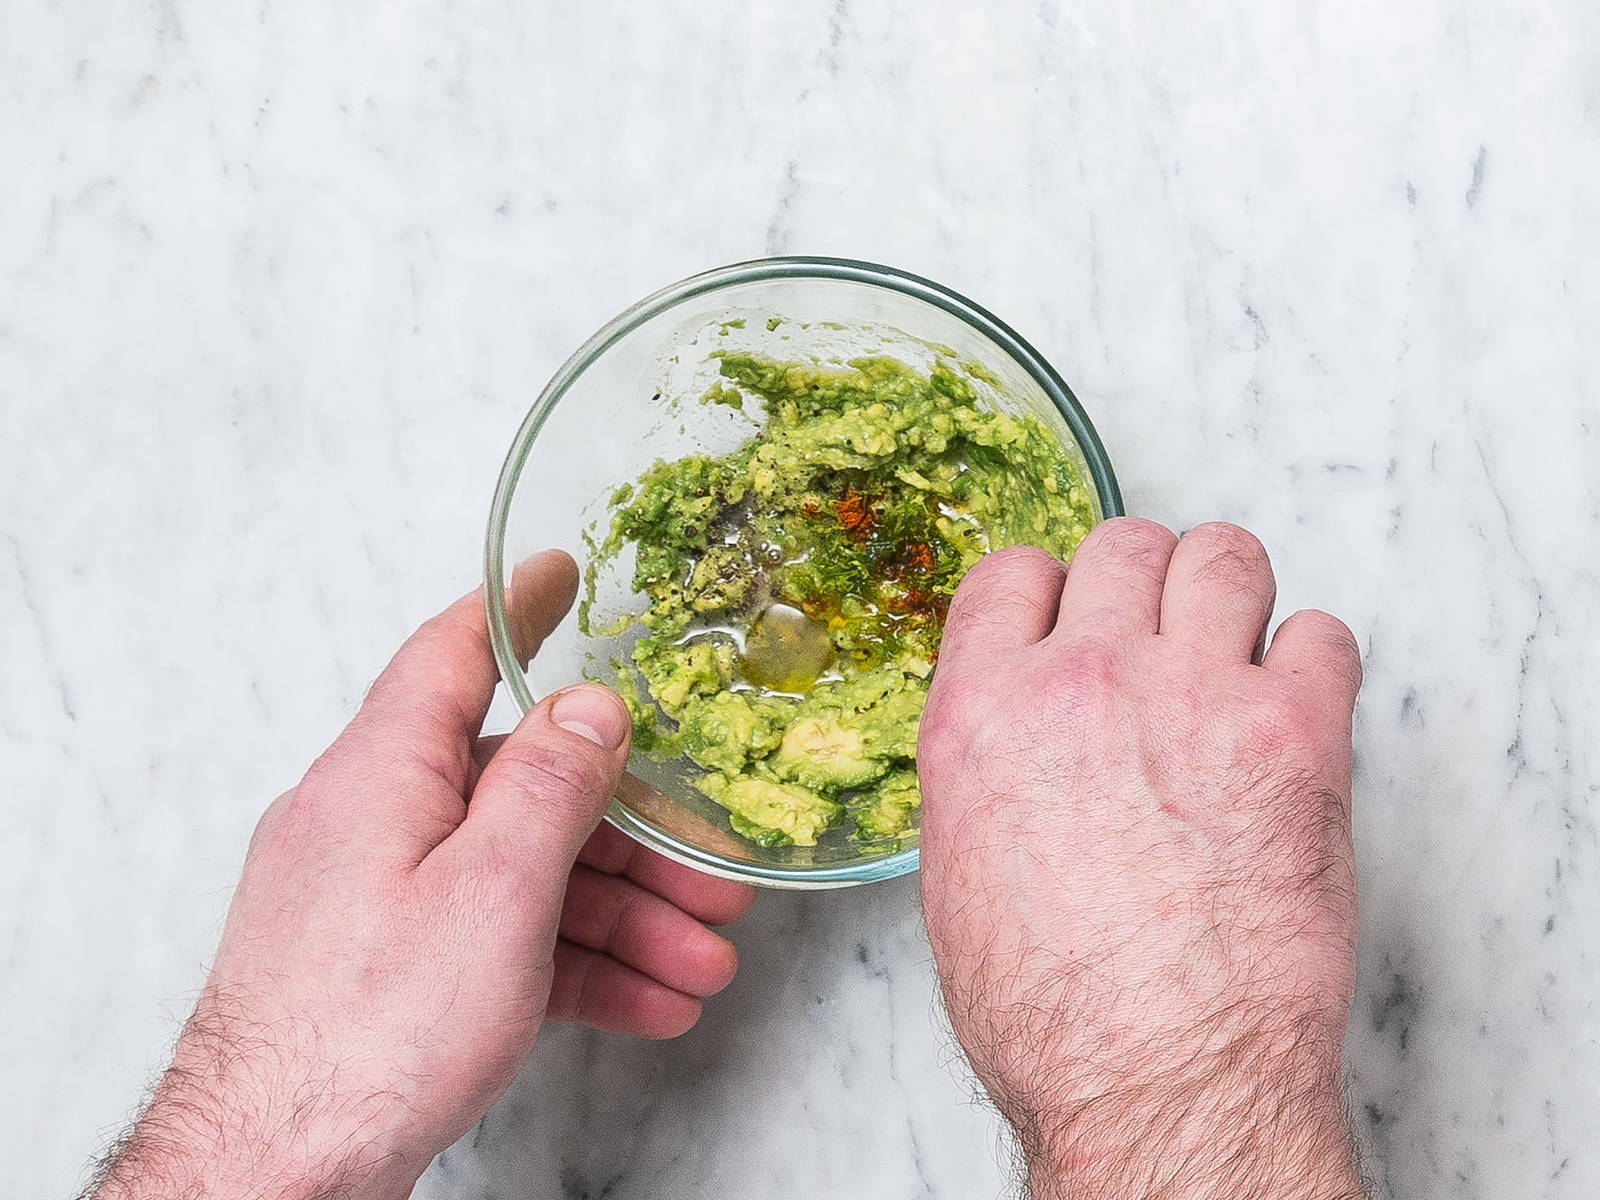 Halve and peel avocado, remove the pit, transfer to a small bowl, and mash with a fork. Season with remaining lime juice and zest, remaining cayenne pepper, salt, and olive oil to taste.